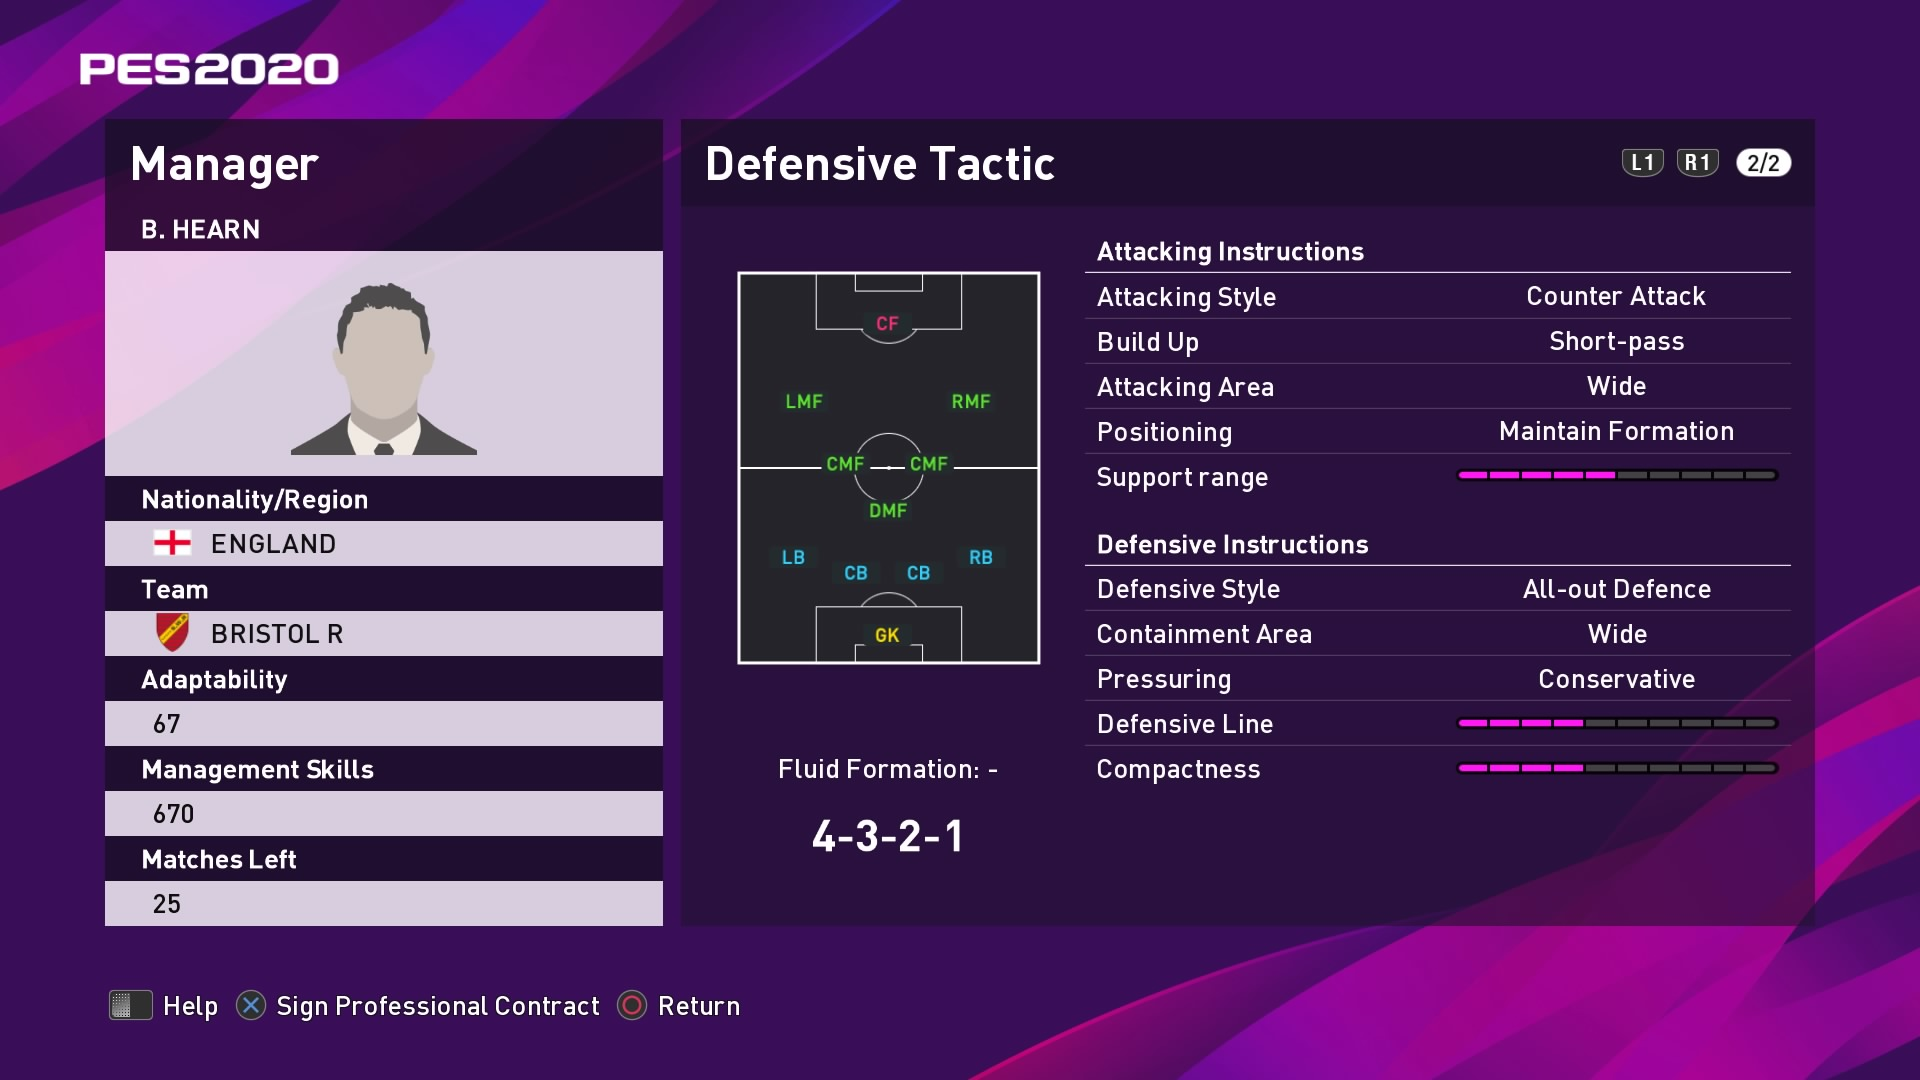 B. Hearn (Lee Johnson) Defensive Tactic in PES 2020 myClub